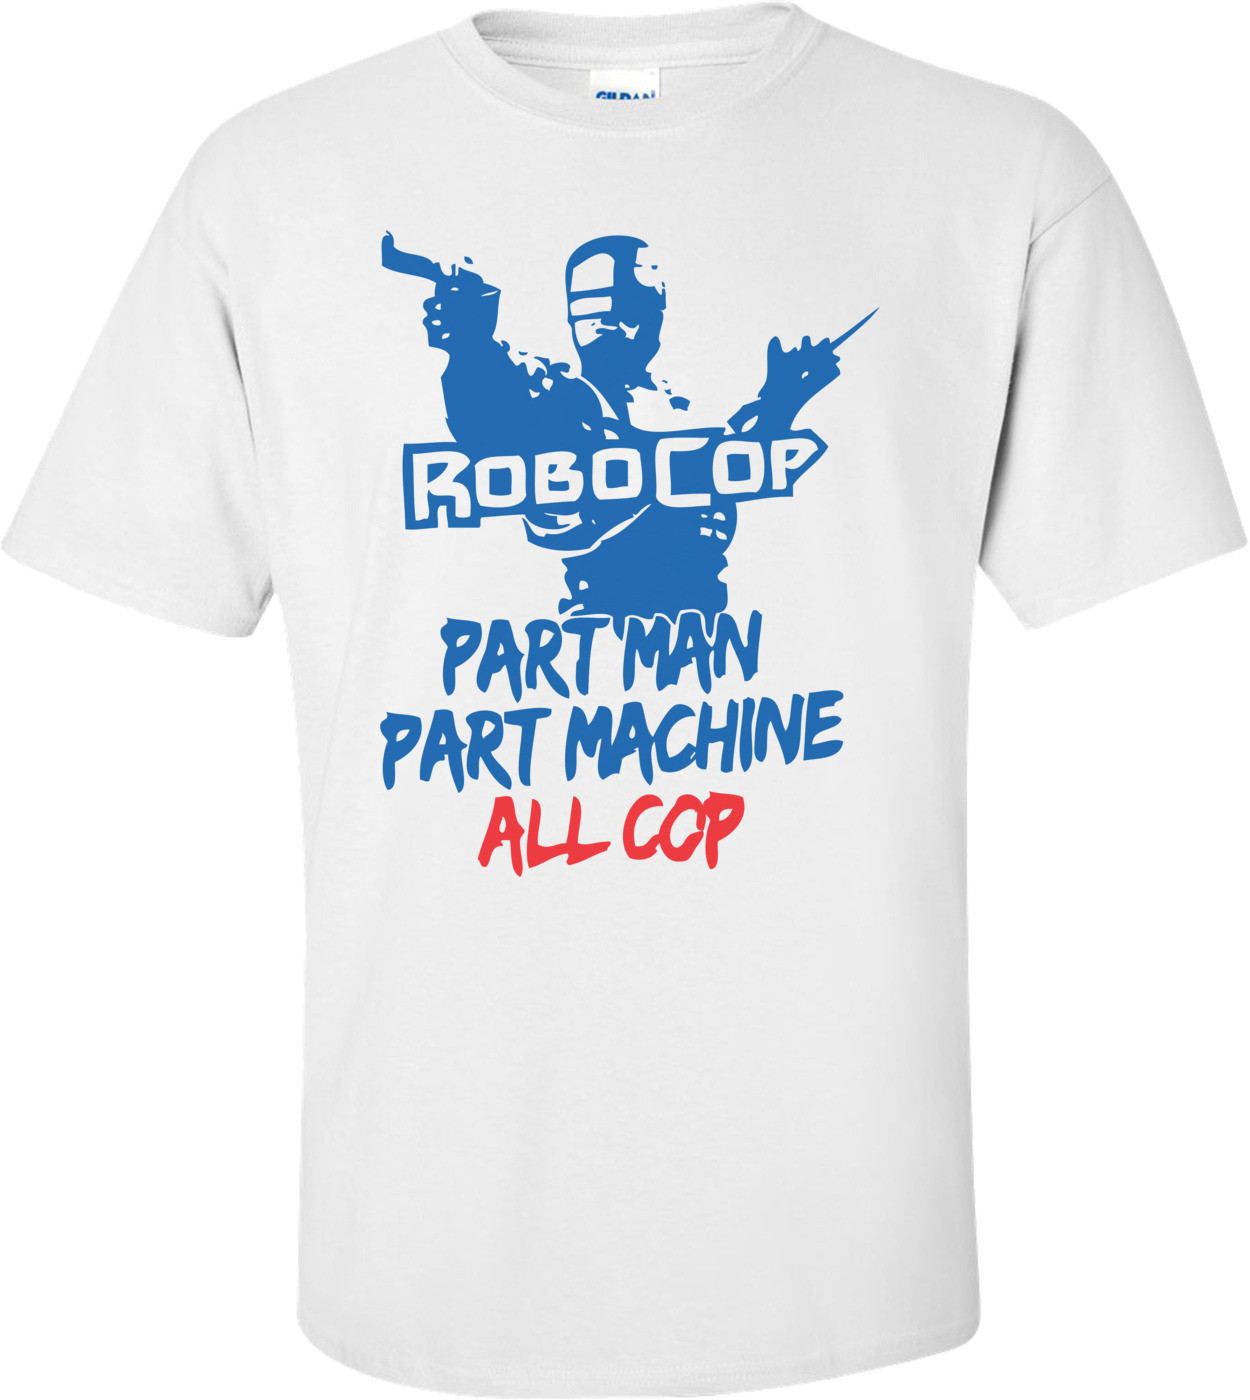 Robocop Part Man Part Machine All Cop